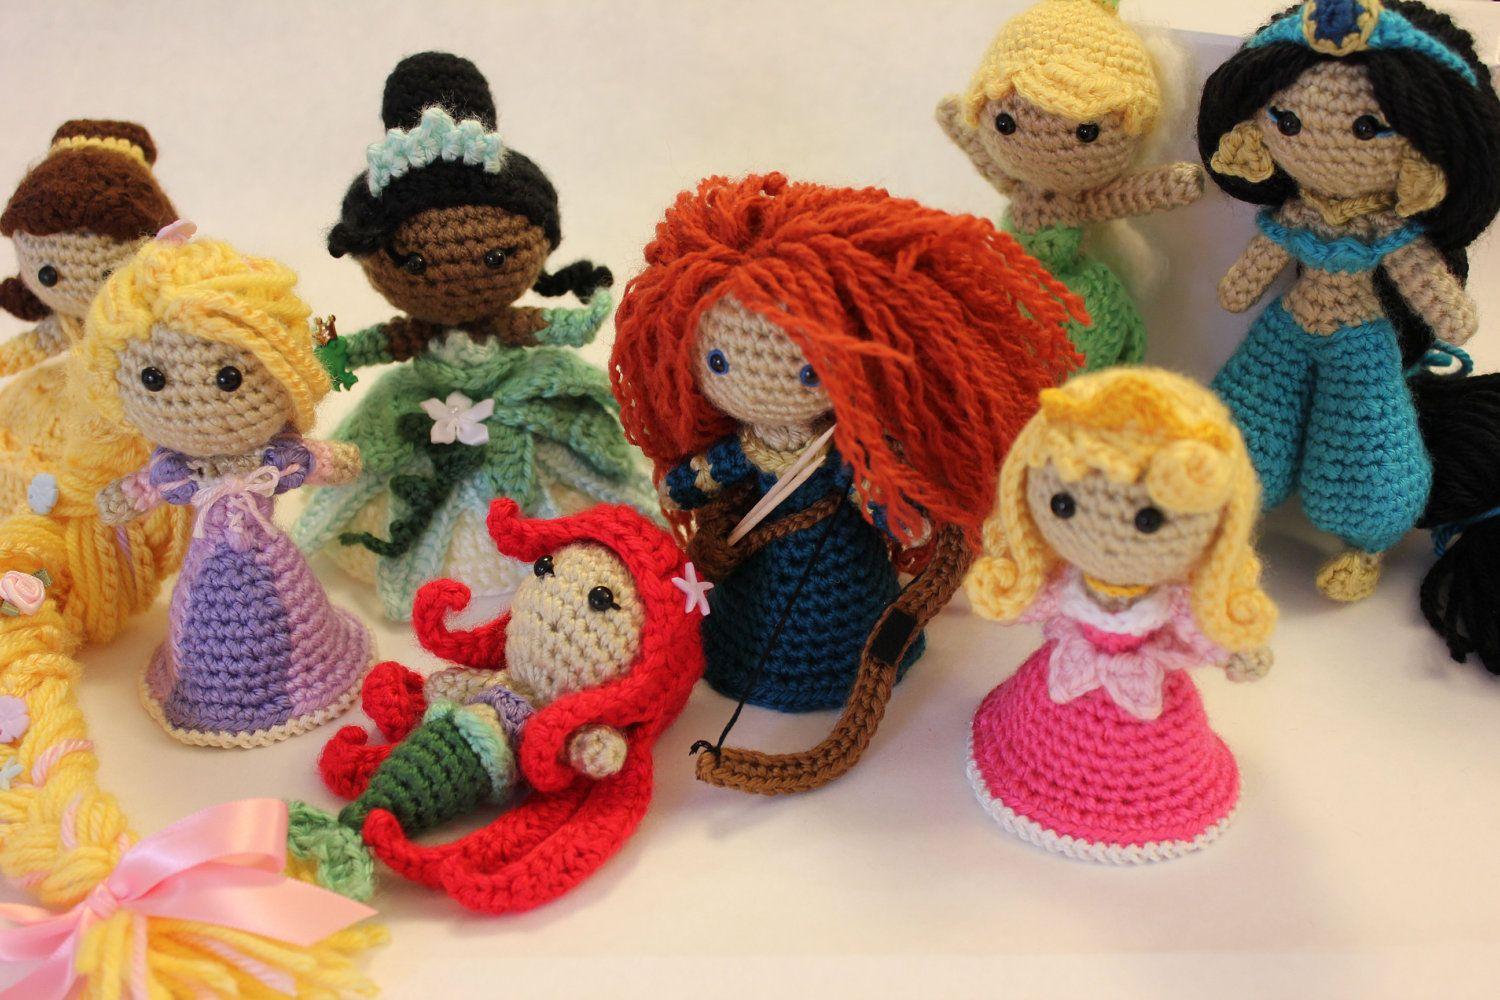 Cute crochet patterns for Disney princesses (for sale on Etsy ...